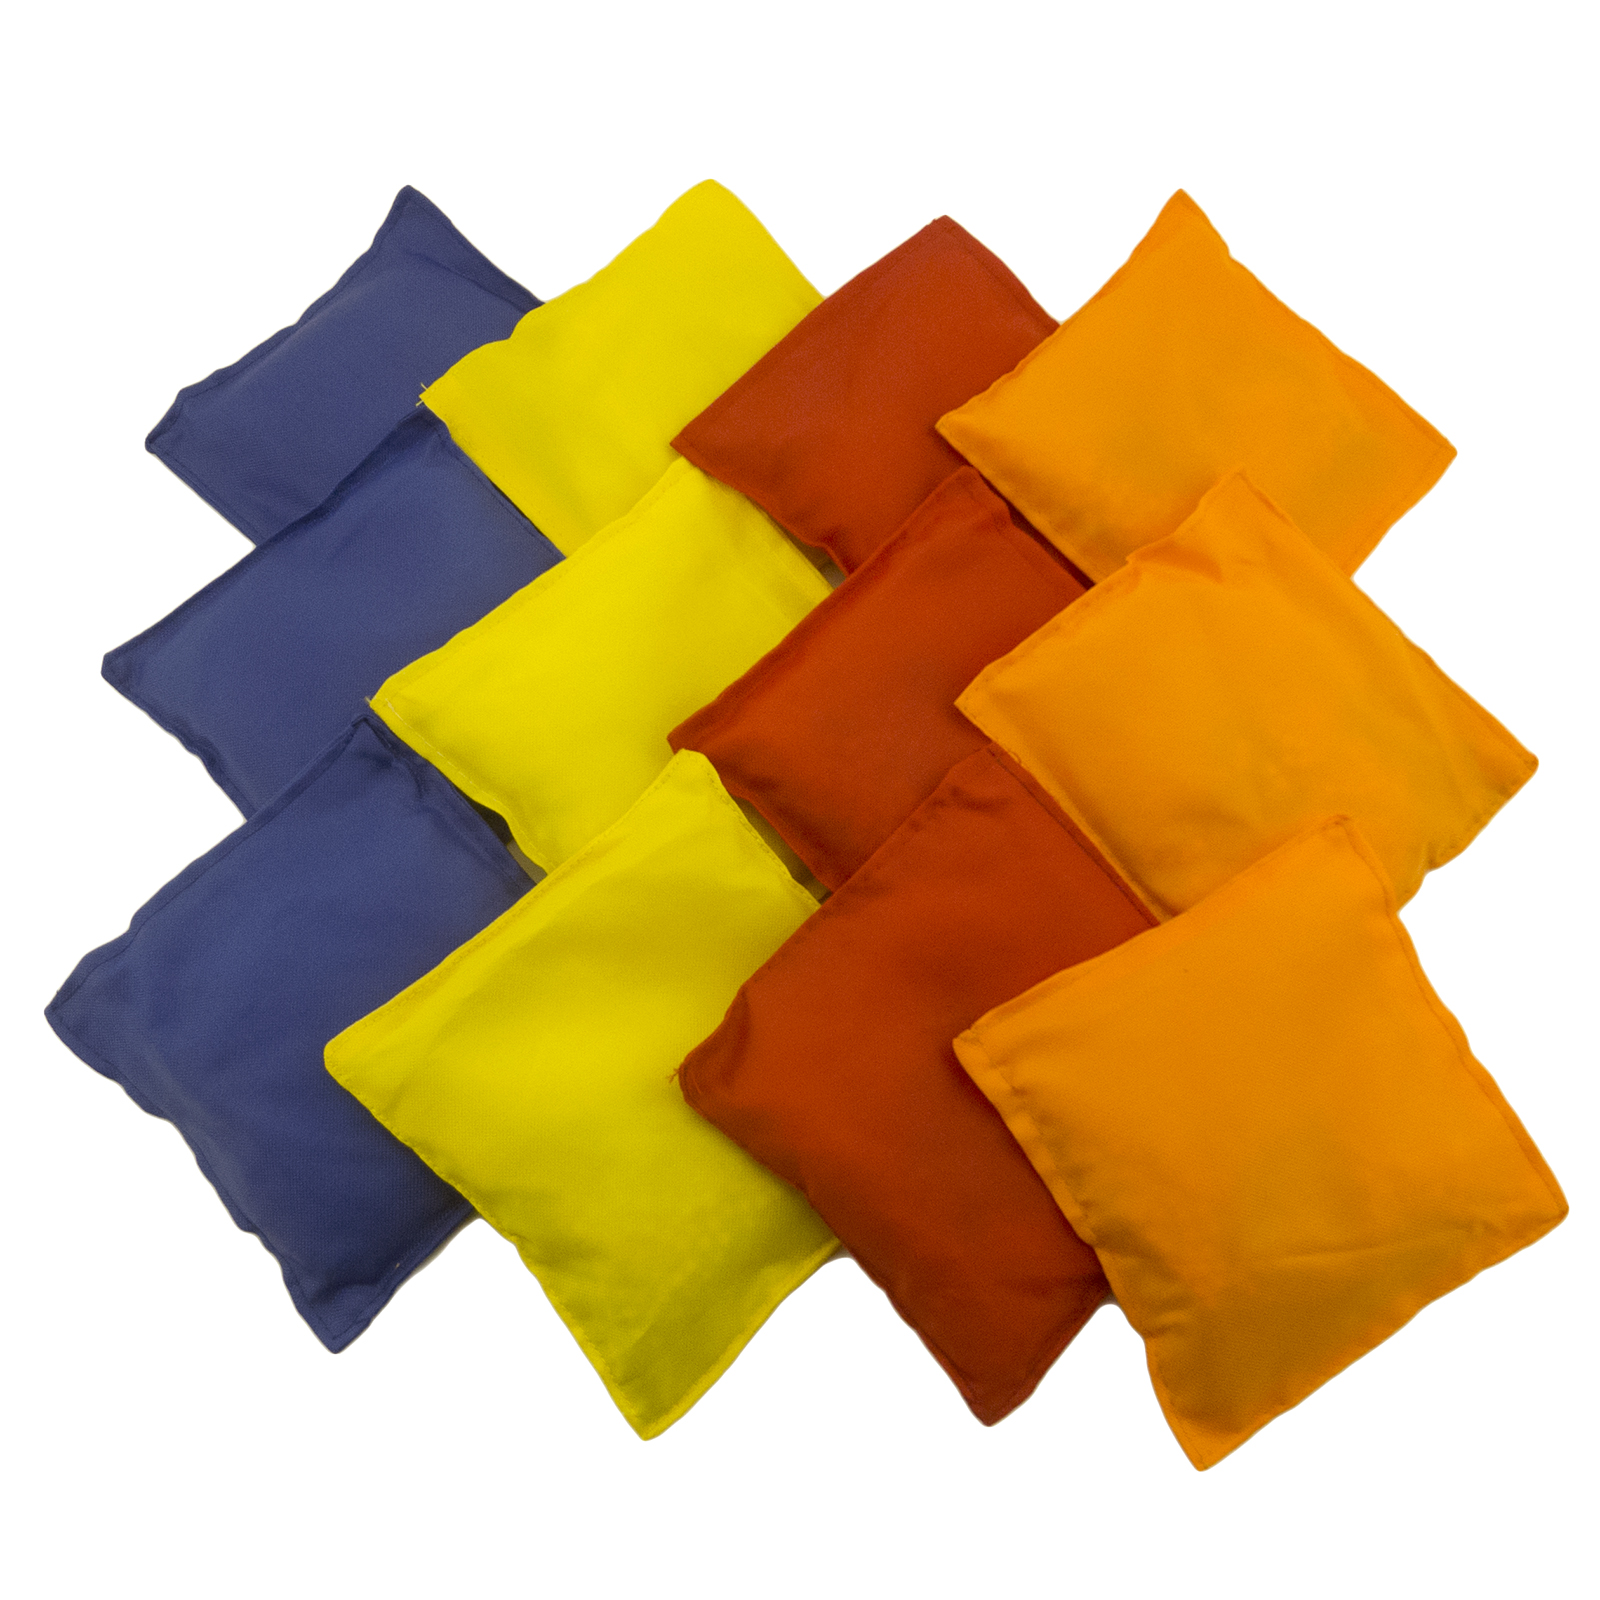 1 Dozen Assorted Nylon Bean Bags